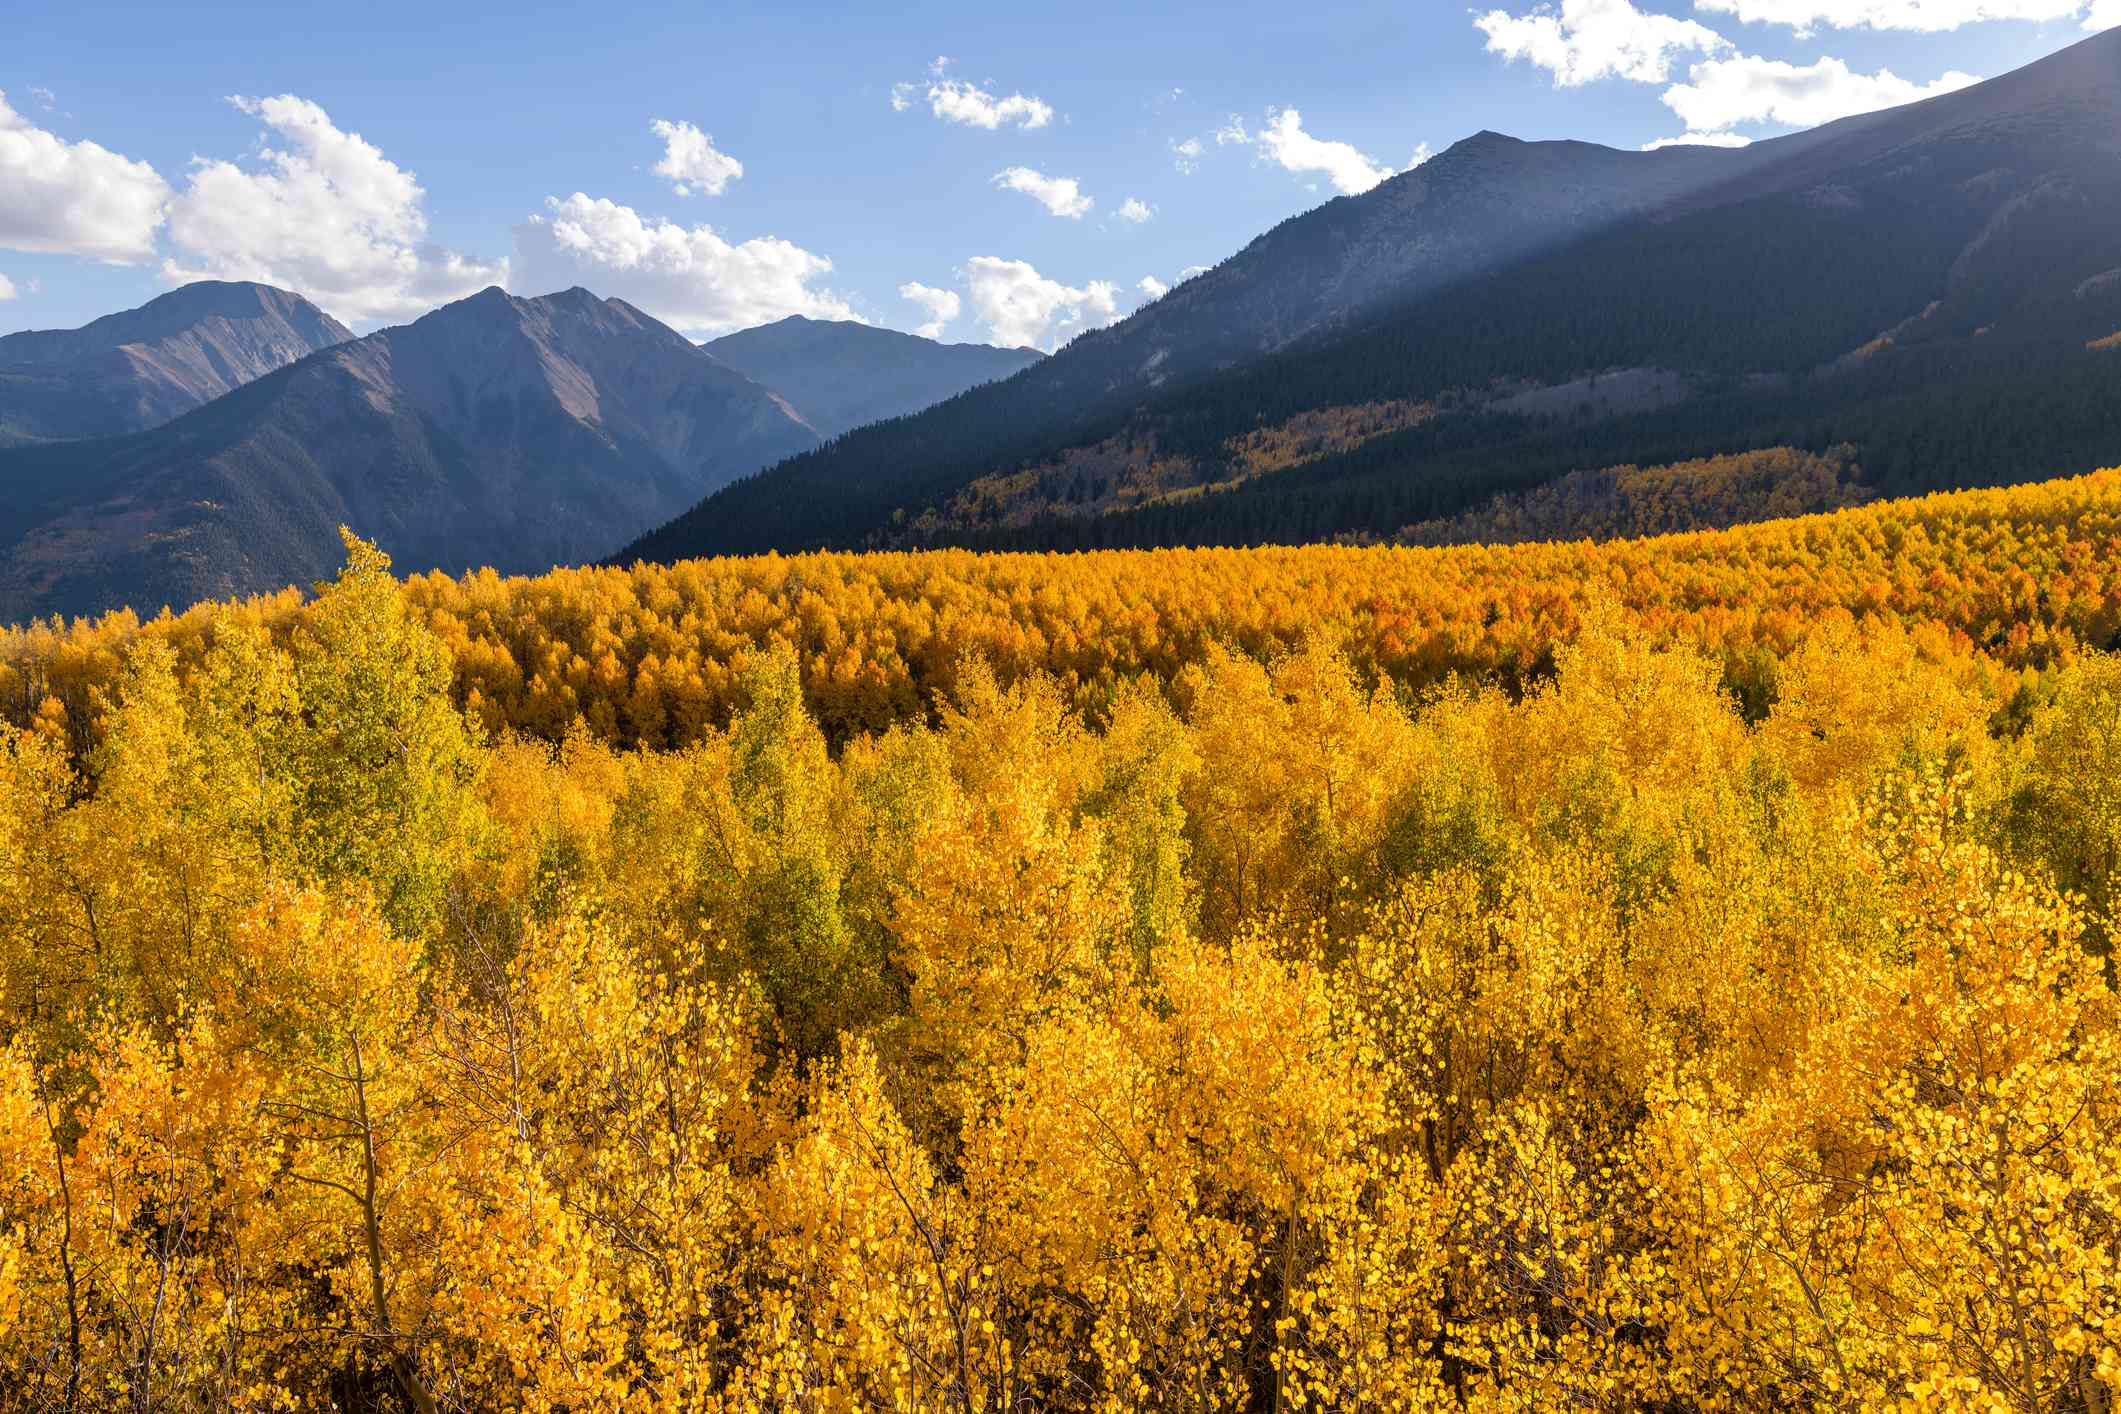 Autumn view of a dense colorful aspen grove in a valley at base of steep peaks of Sawatch Range. Twin Lakes, Leadville, Colorado with blue sky and white clouds above the mountain peaks